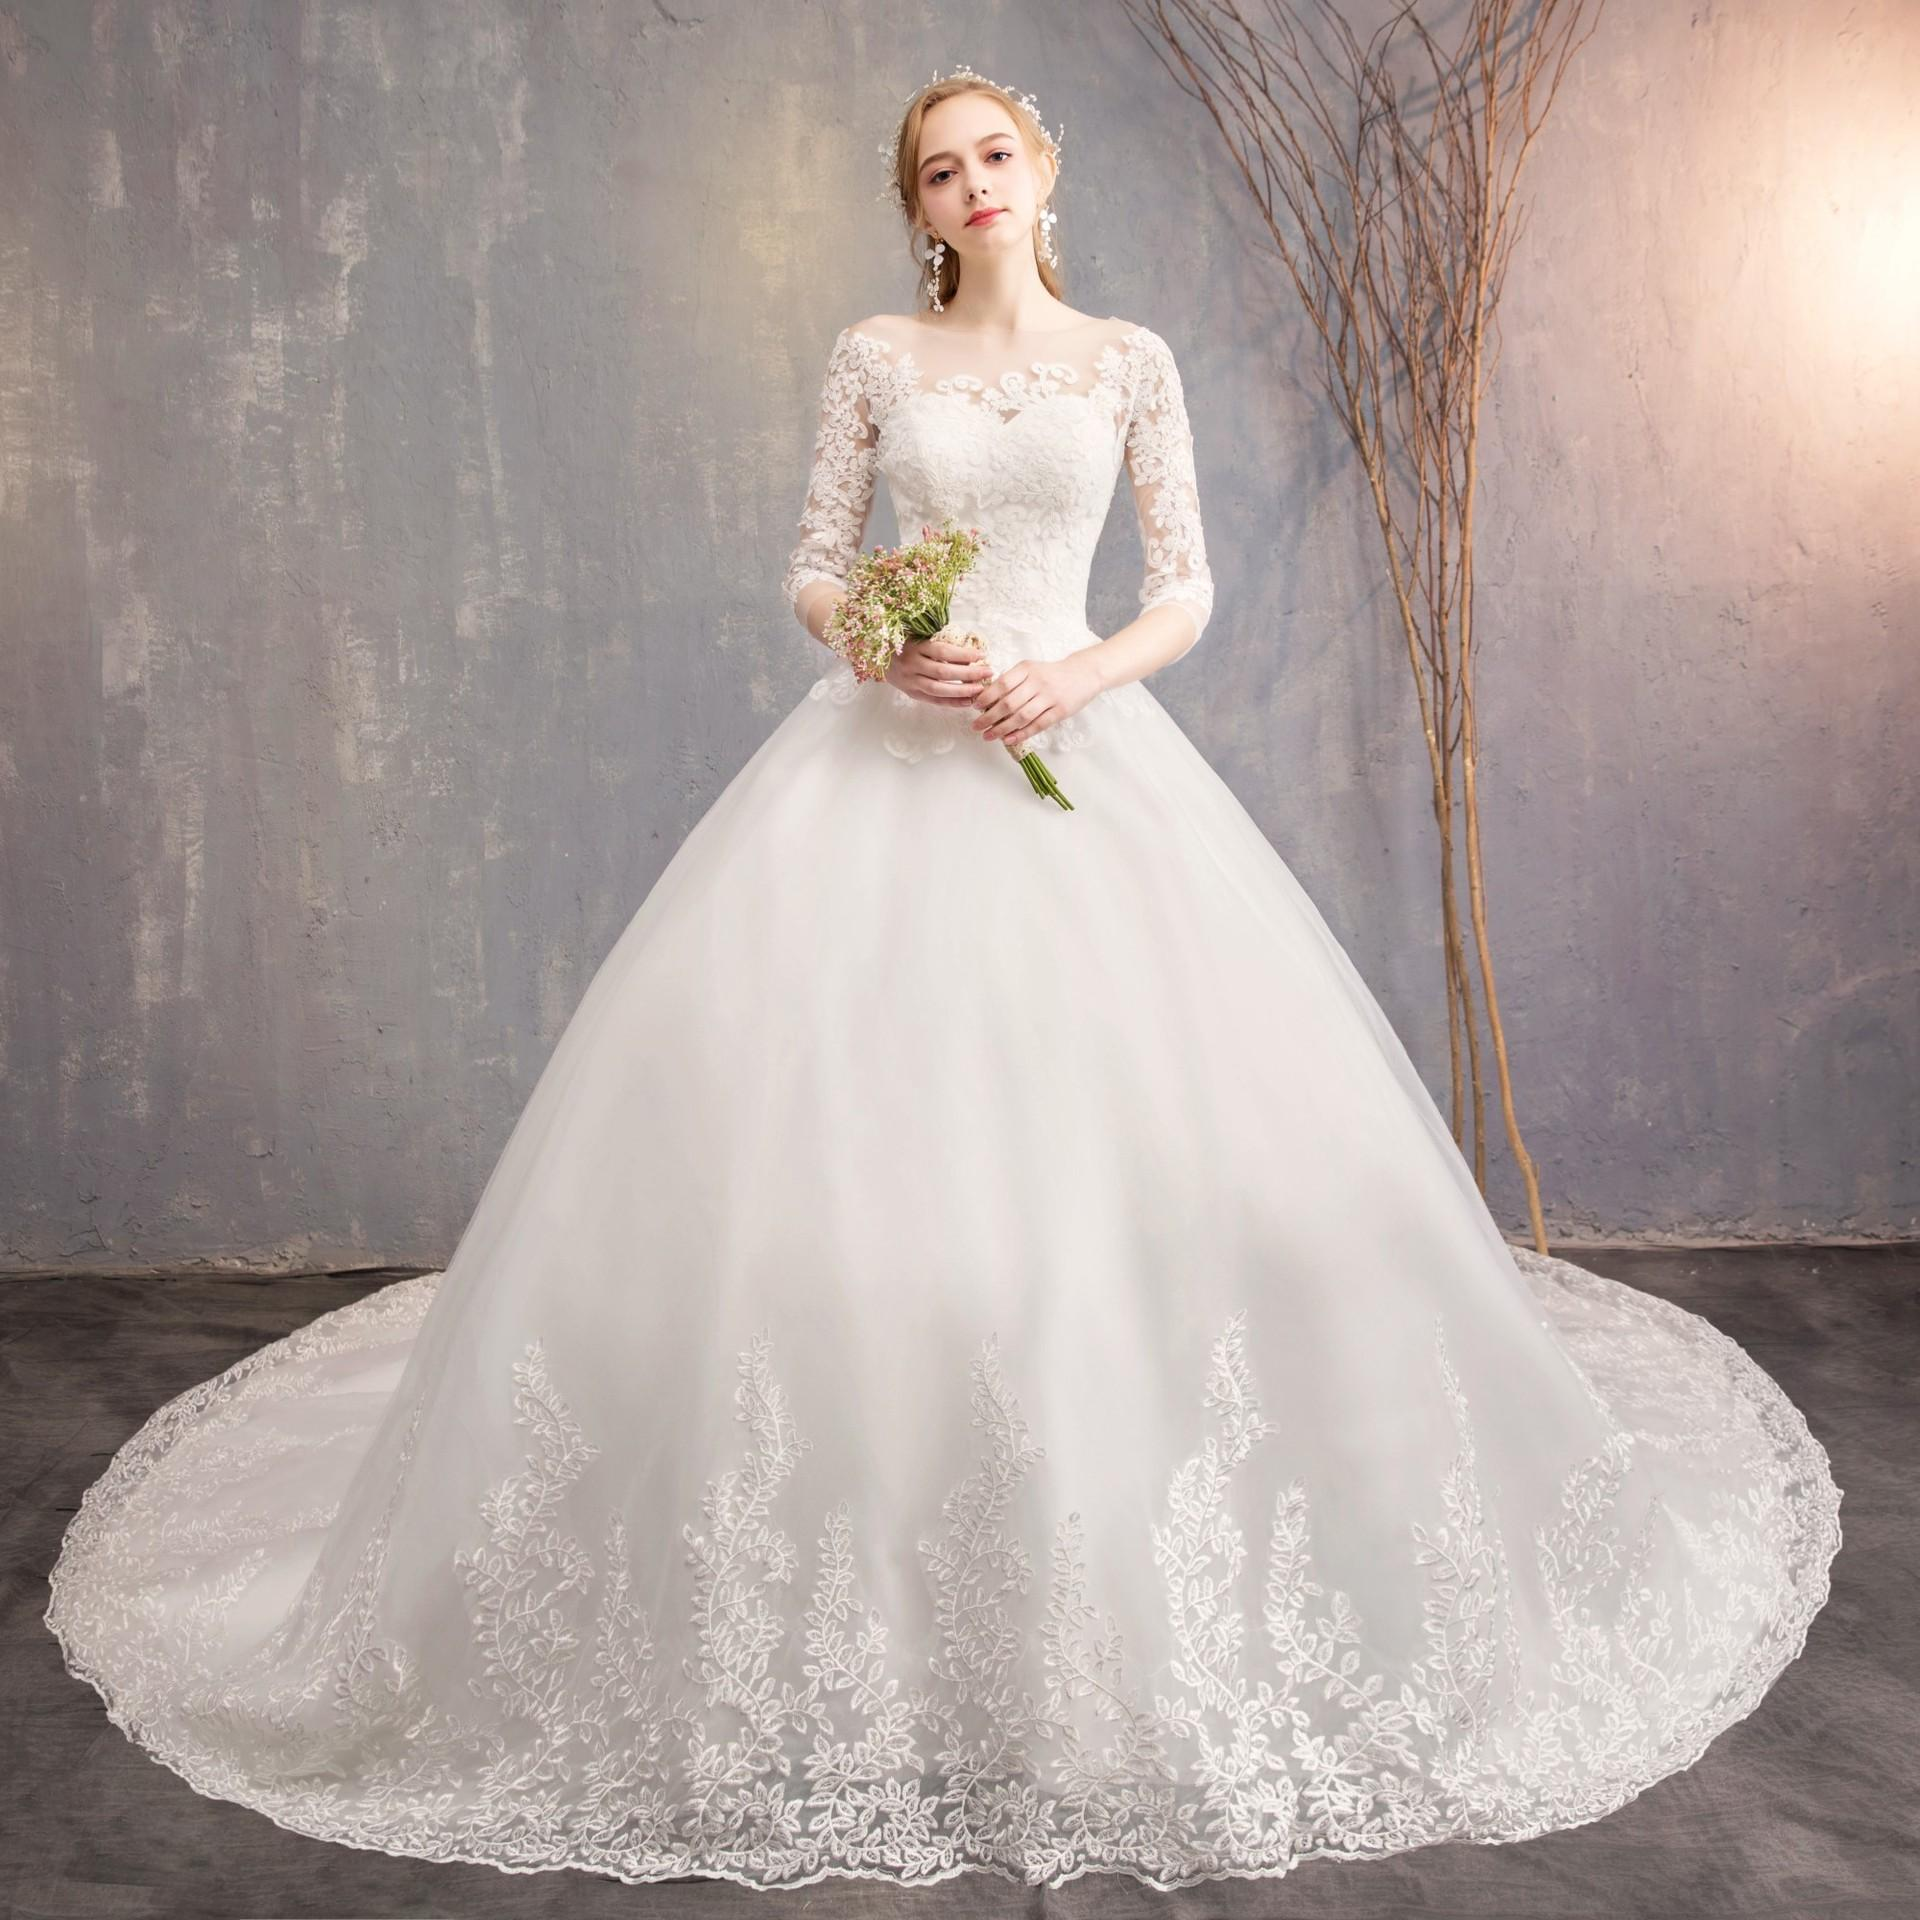 Long Sleeved Wedding Dresses.Wedding Dress New Long Sleeved Bride Princess Dreamlike Tail Shadow Builder Wedding Dress